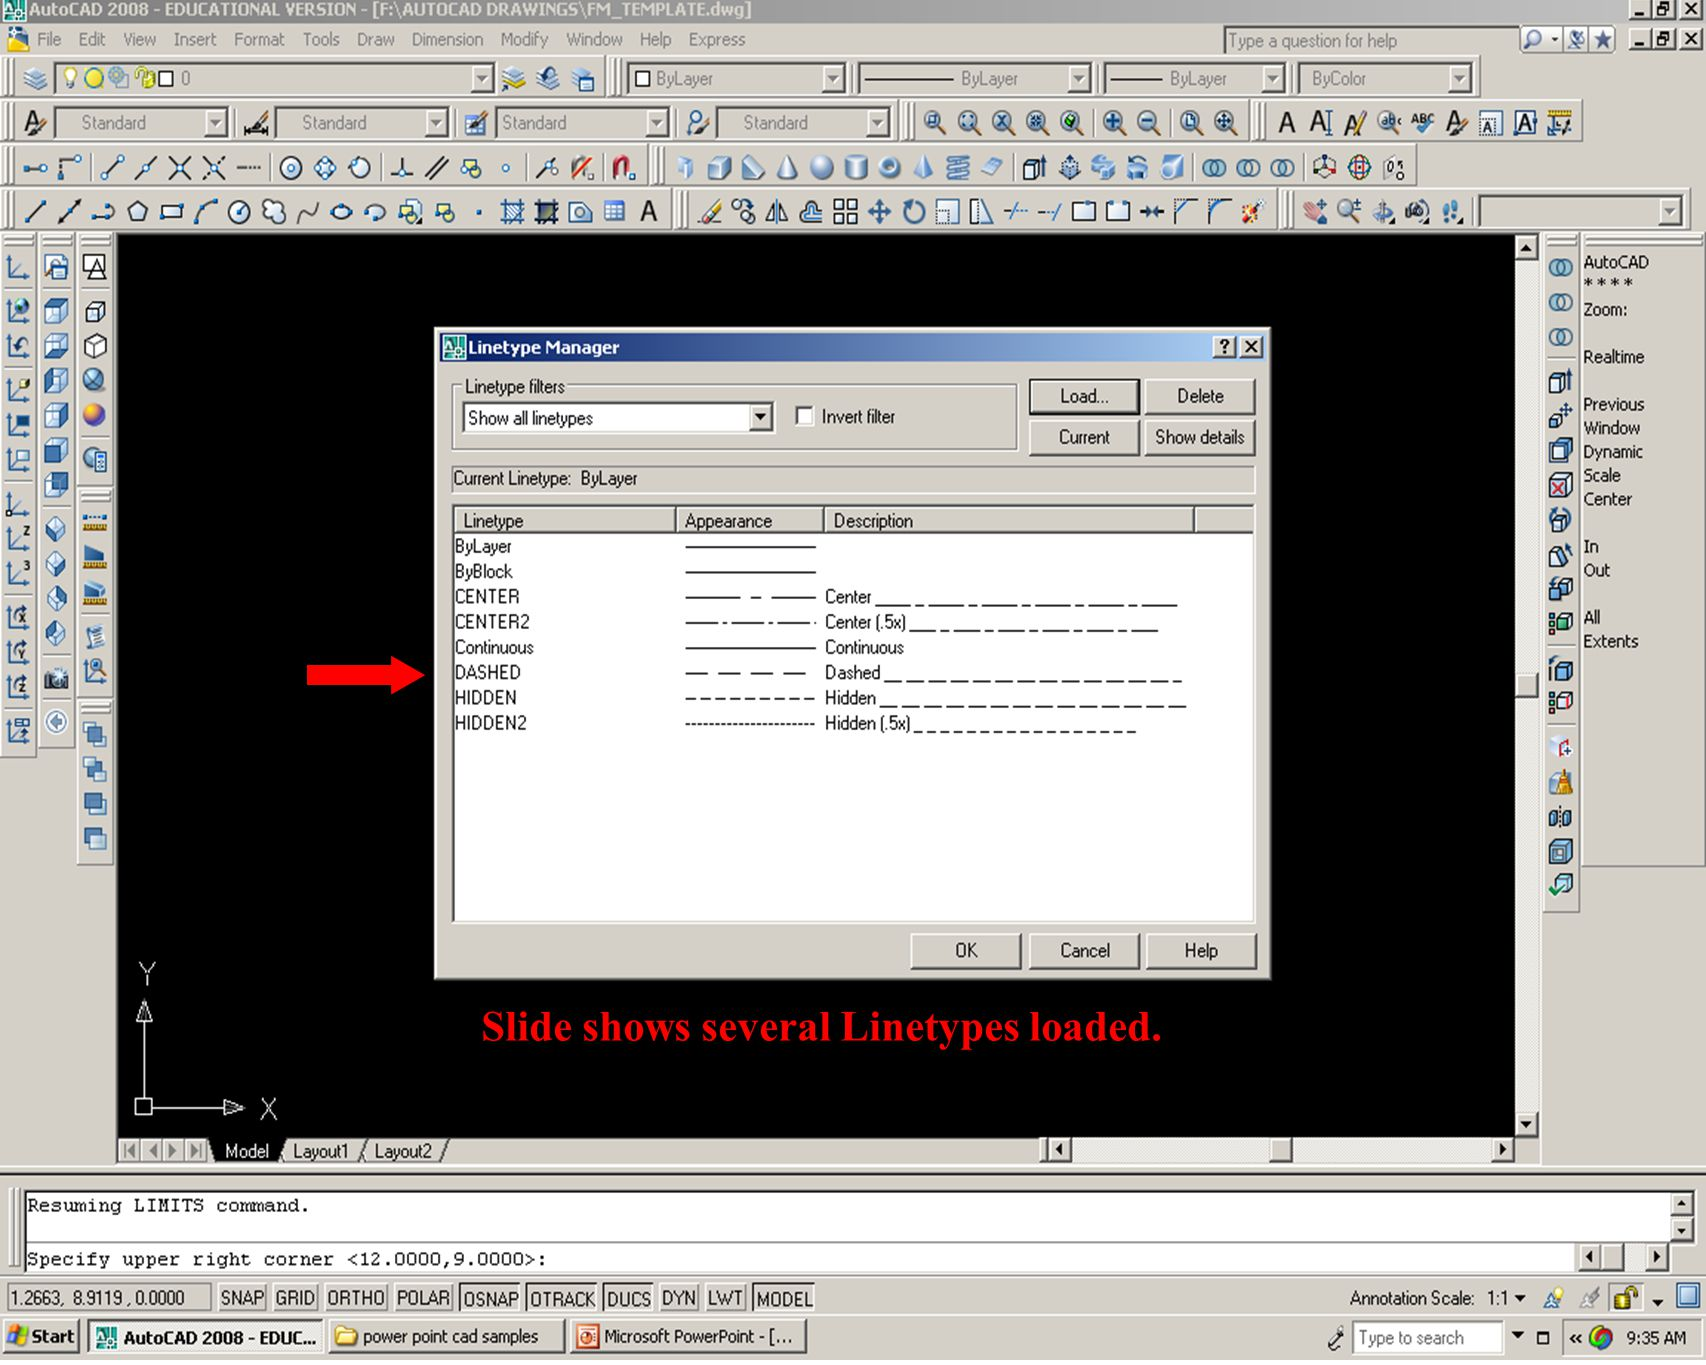 Slide shows several Linetypes loaded.